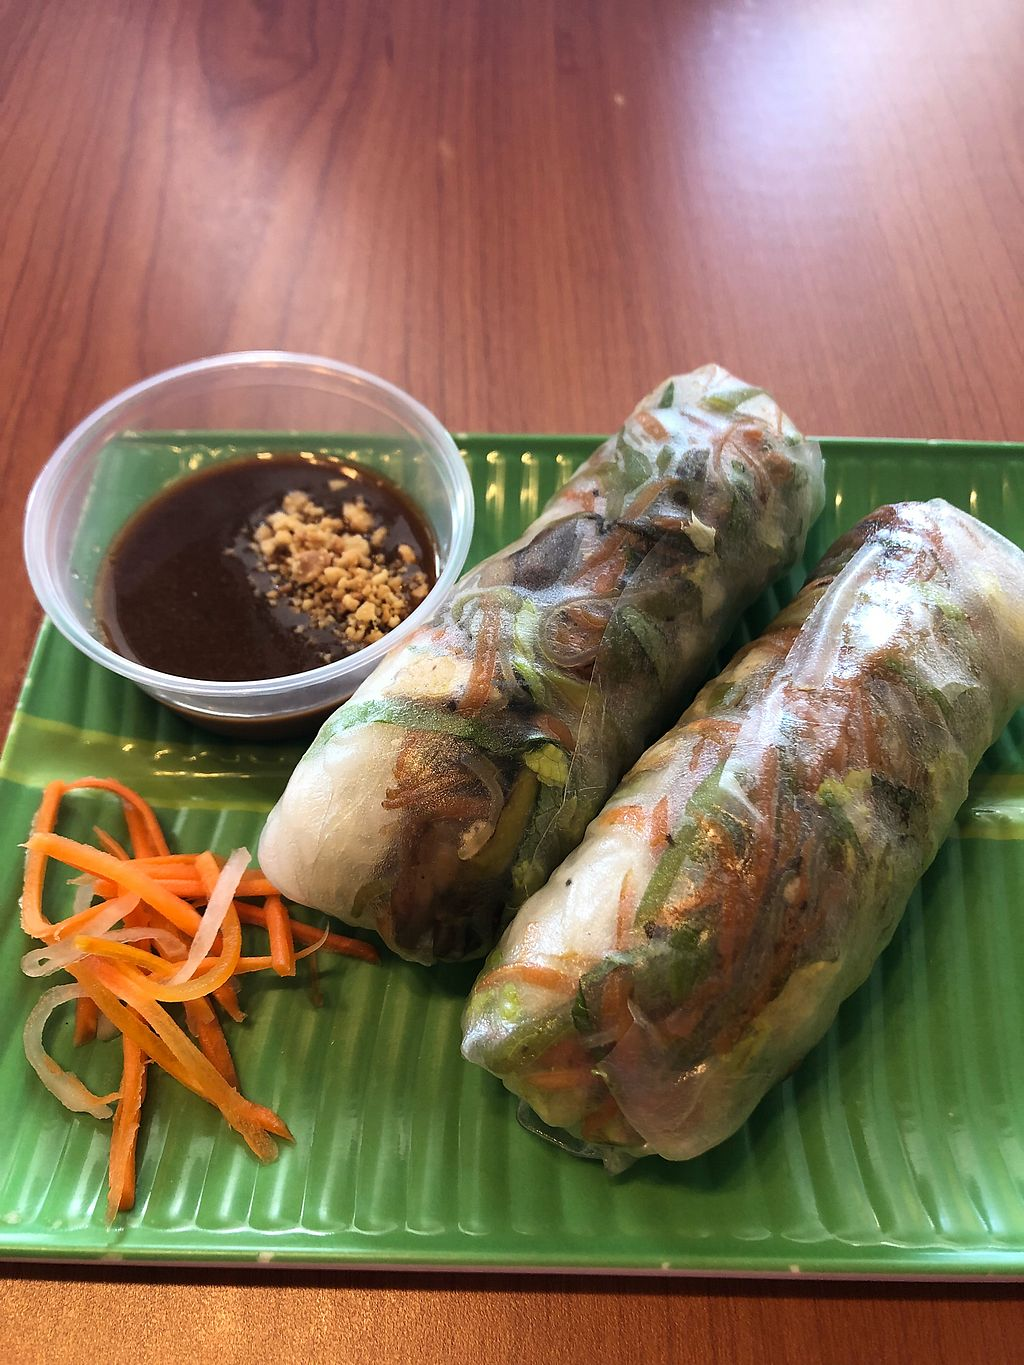 "Photo of Pho Brothers  by <a href=""/members/profile/mishele30"">mishele30</a> <br/>Tofu summer rolls <br/> February 8, 2018  - <a href='/contact/abuse/image/110798/356556'>Report</a>"